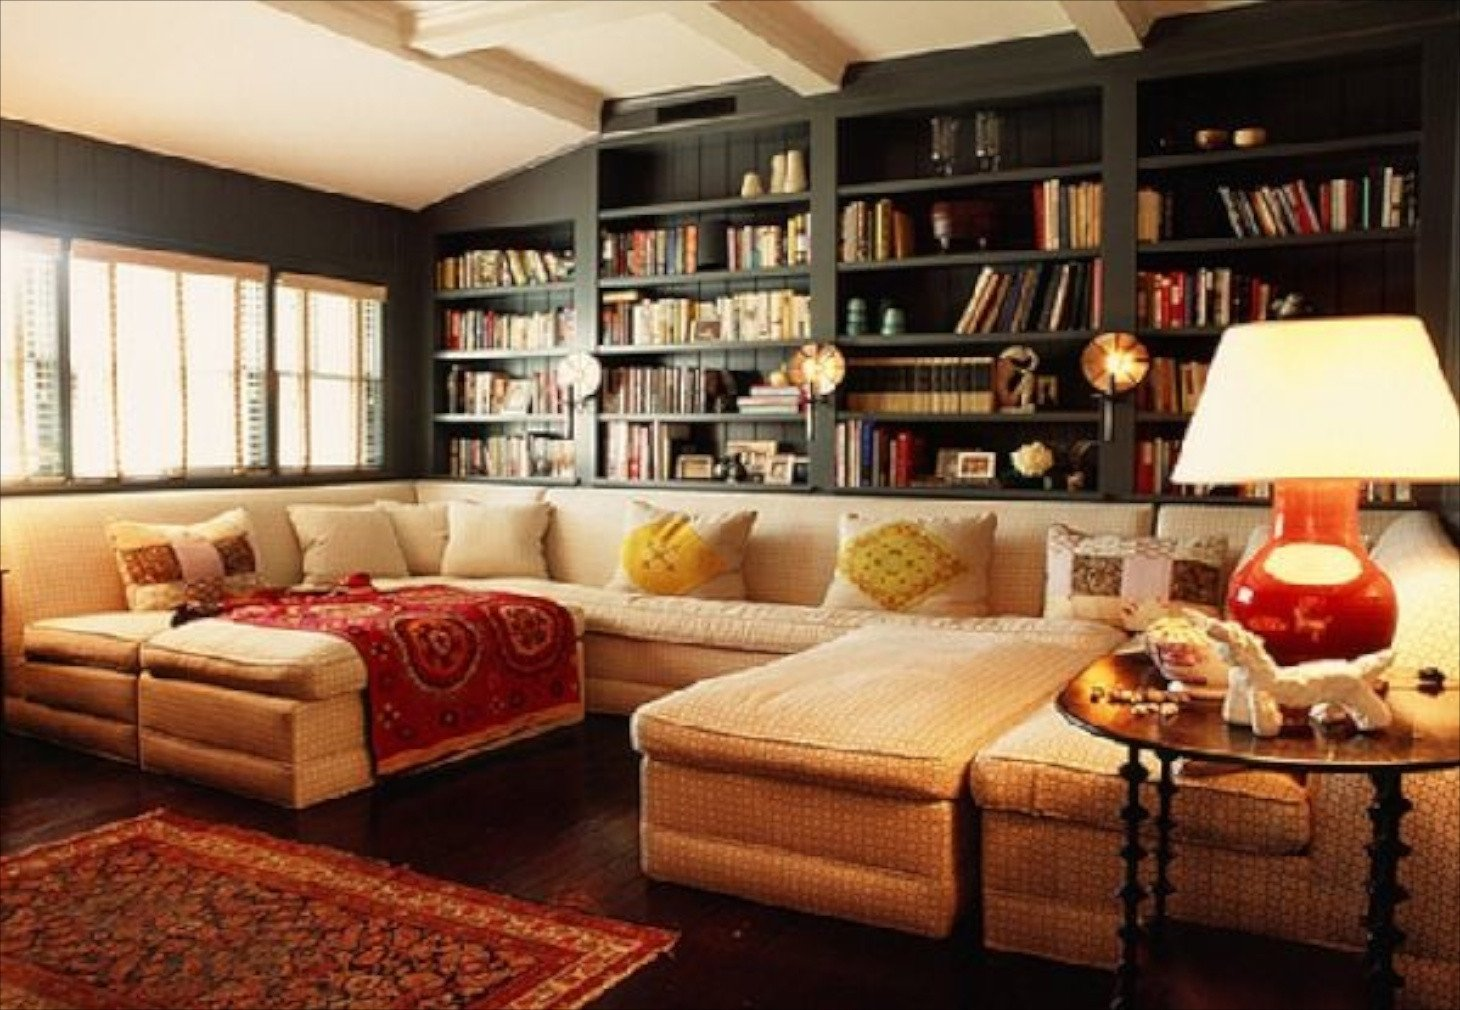 Cozy Traditional Living Room Luxury 23 sofas and Bookcase Ideas In Cozy Living Room Design with Mixture Classic and Modern Styles Whg